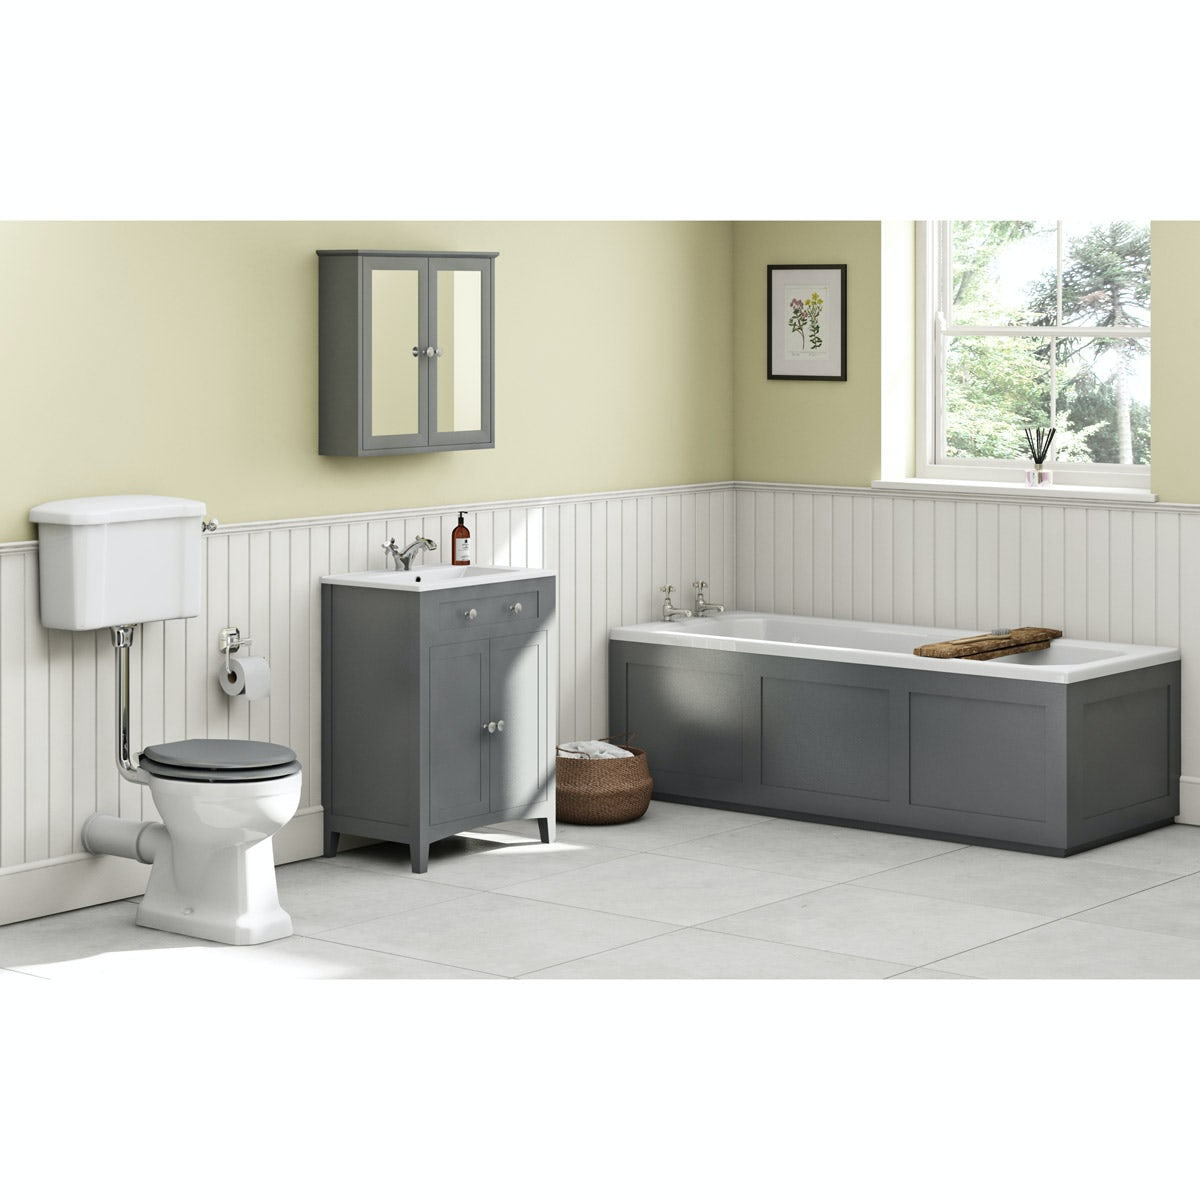 The Bath Co. Camberley satin grey low level furniture suite with straight bath 1700 x 700